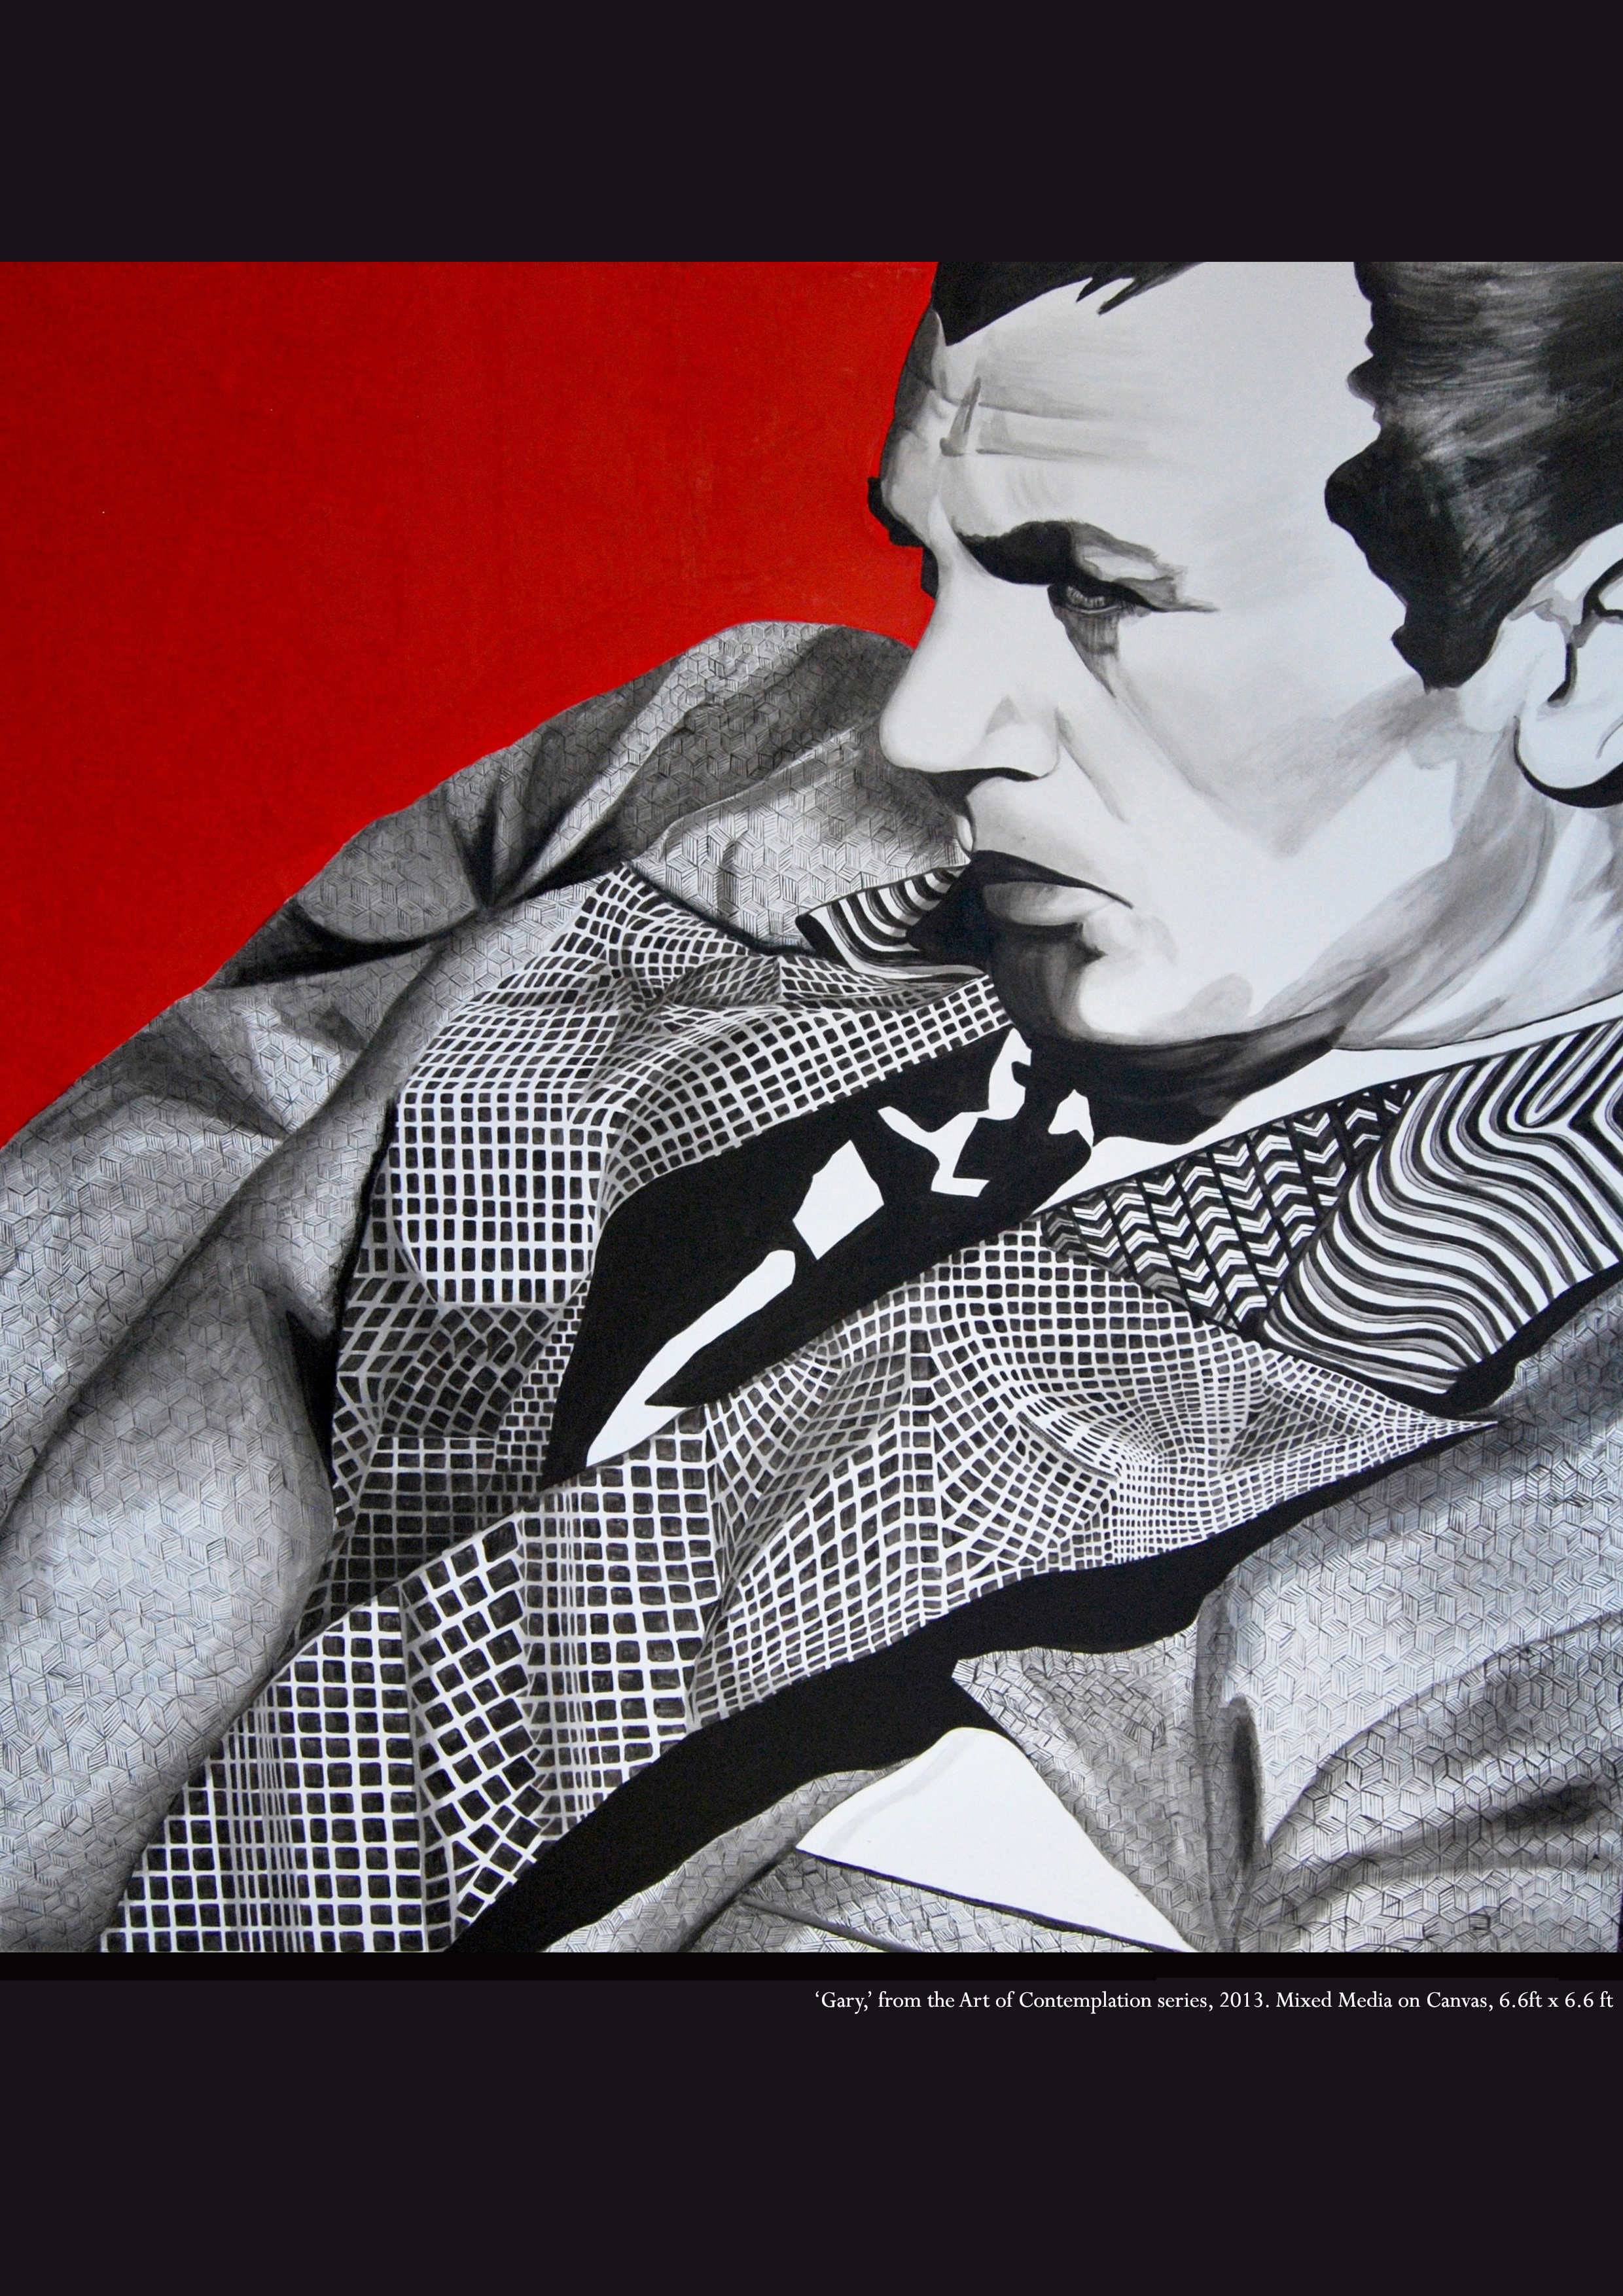 The Art of Contemplation Series #Gary Cooper   2013  Mixed Media  6.6ft x 6.6ft